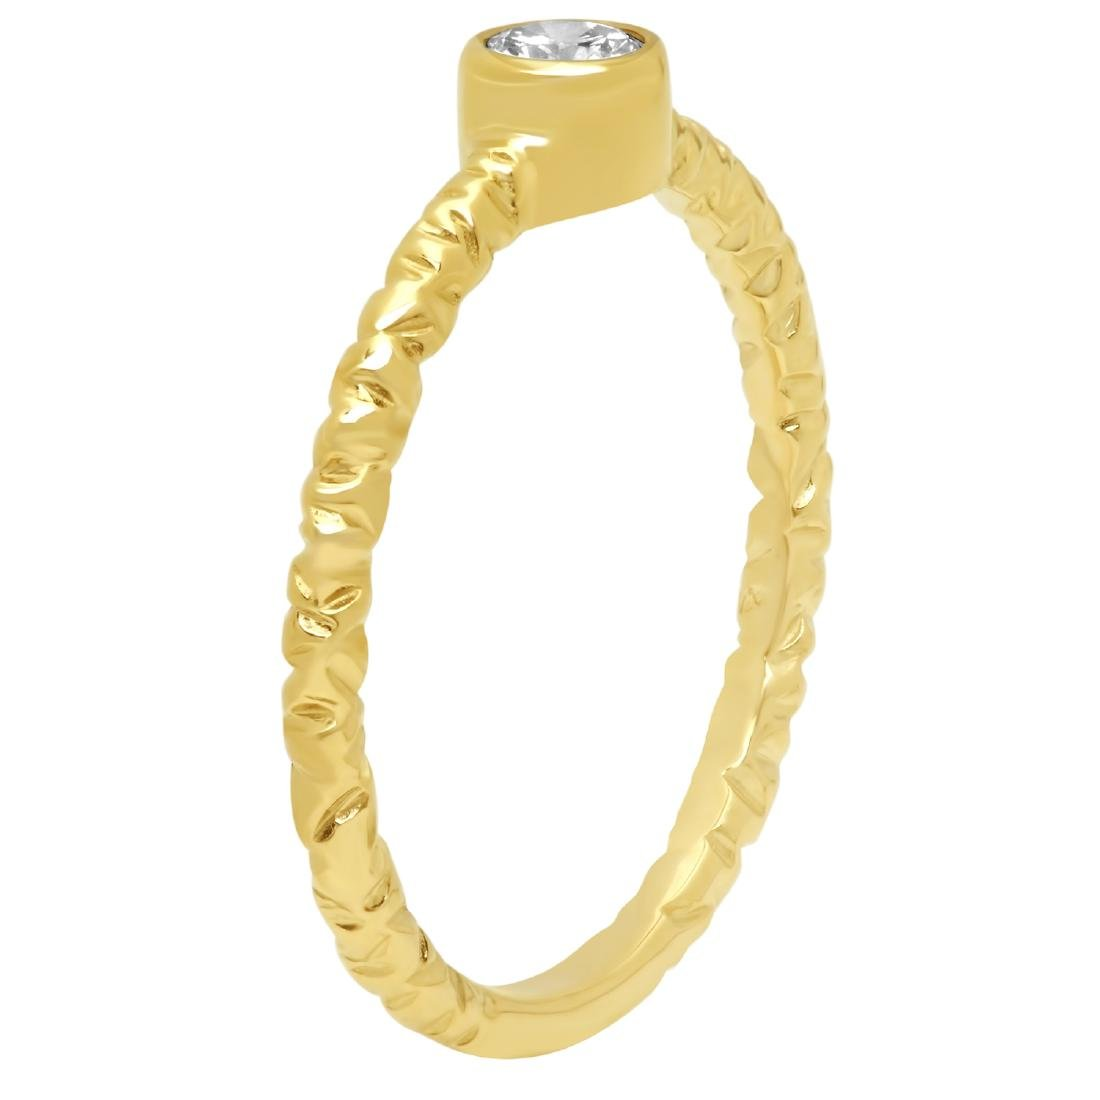 0.20 Carat Natural Diamond 18K Solid Yellow Gold Ring - 2